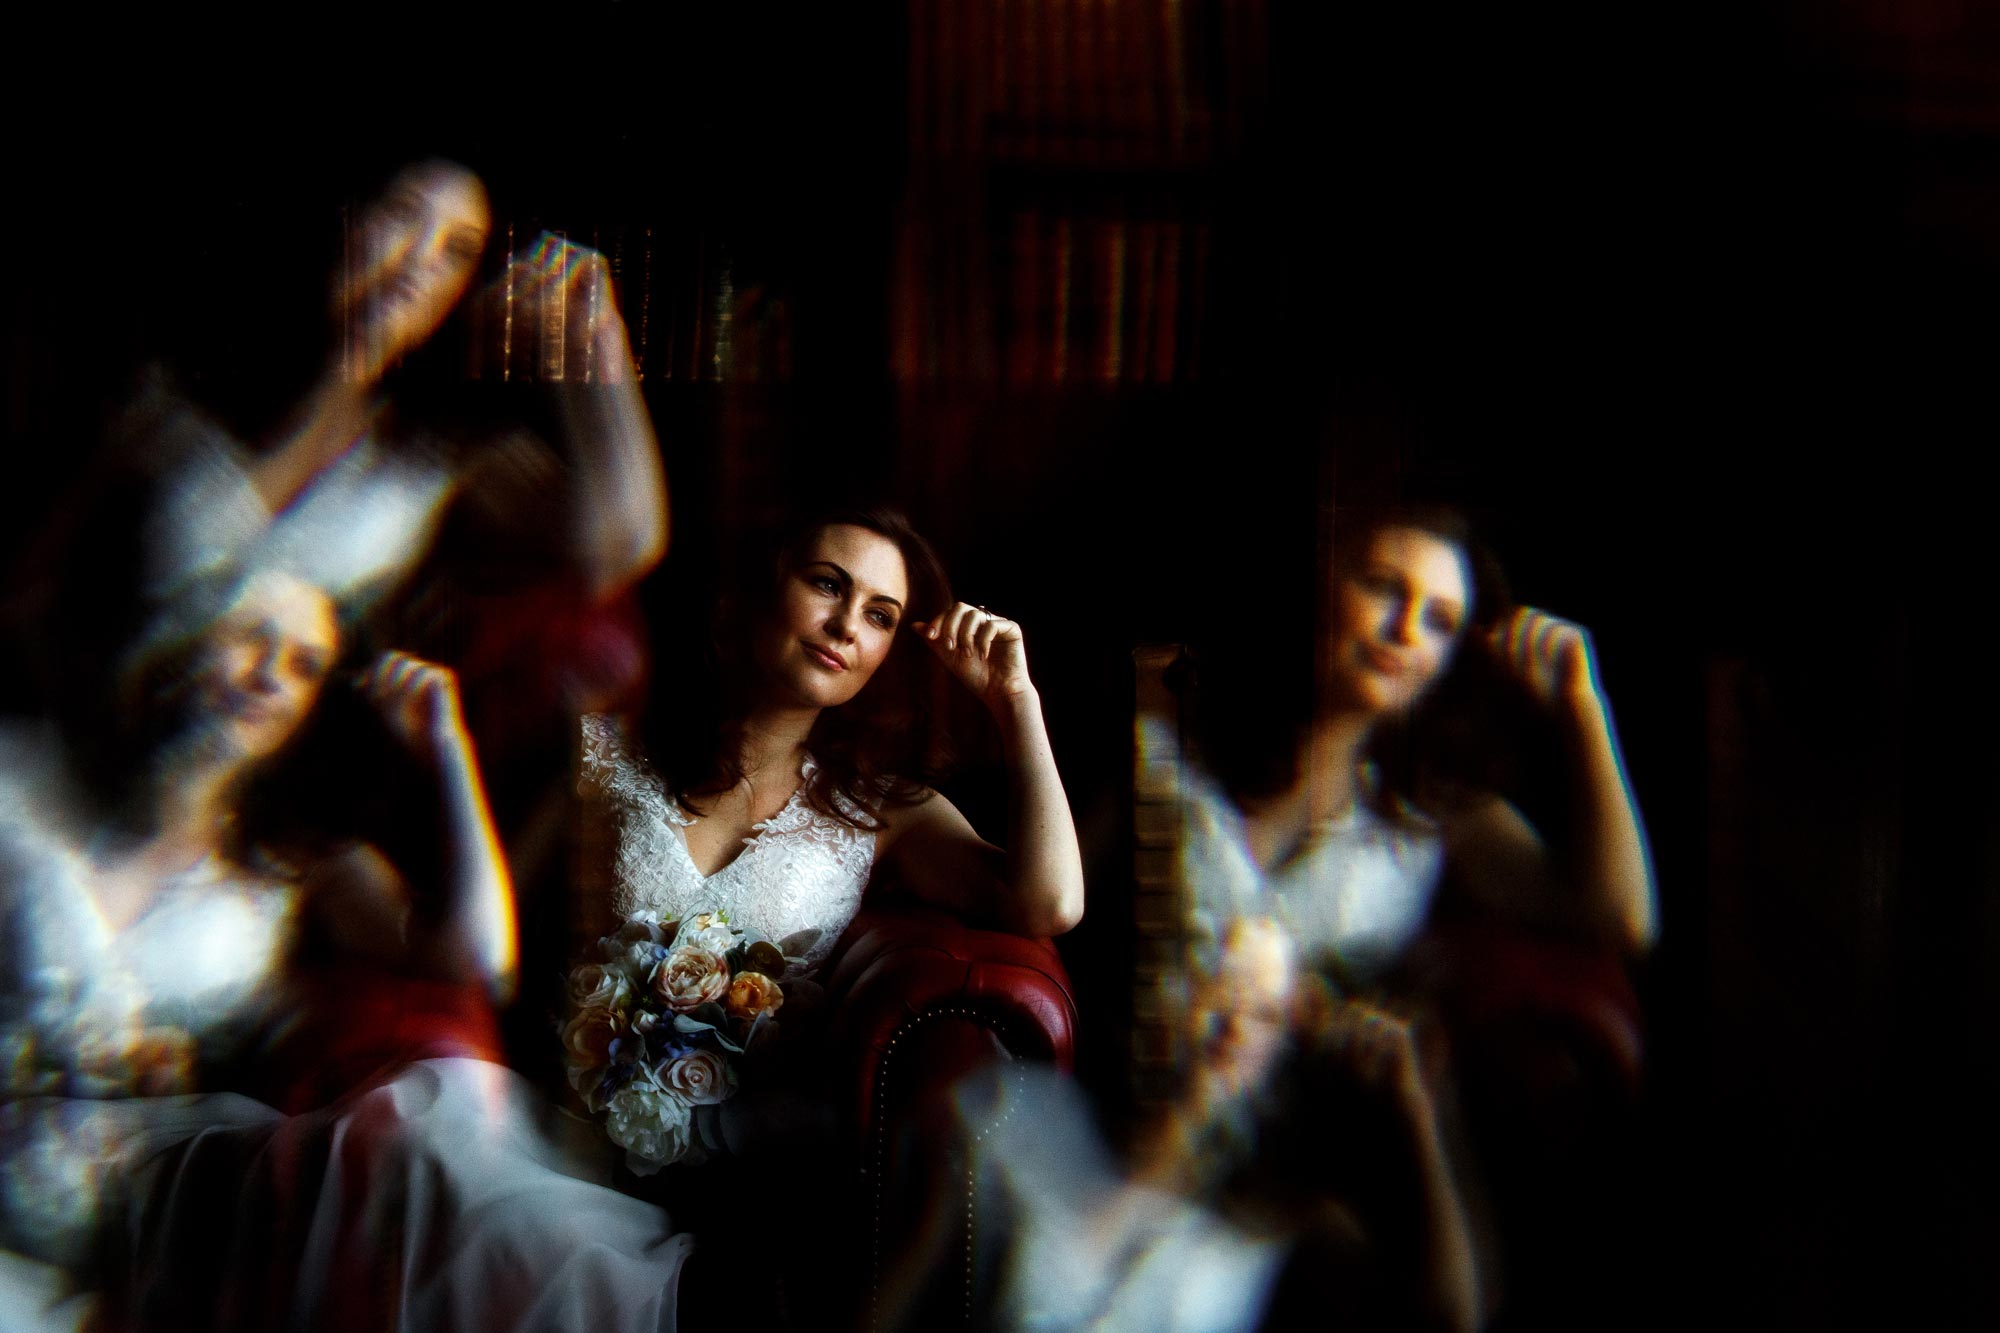 Creative wedding photograph of a bride as if looking through multiple exposures